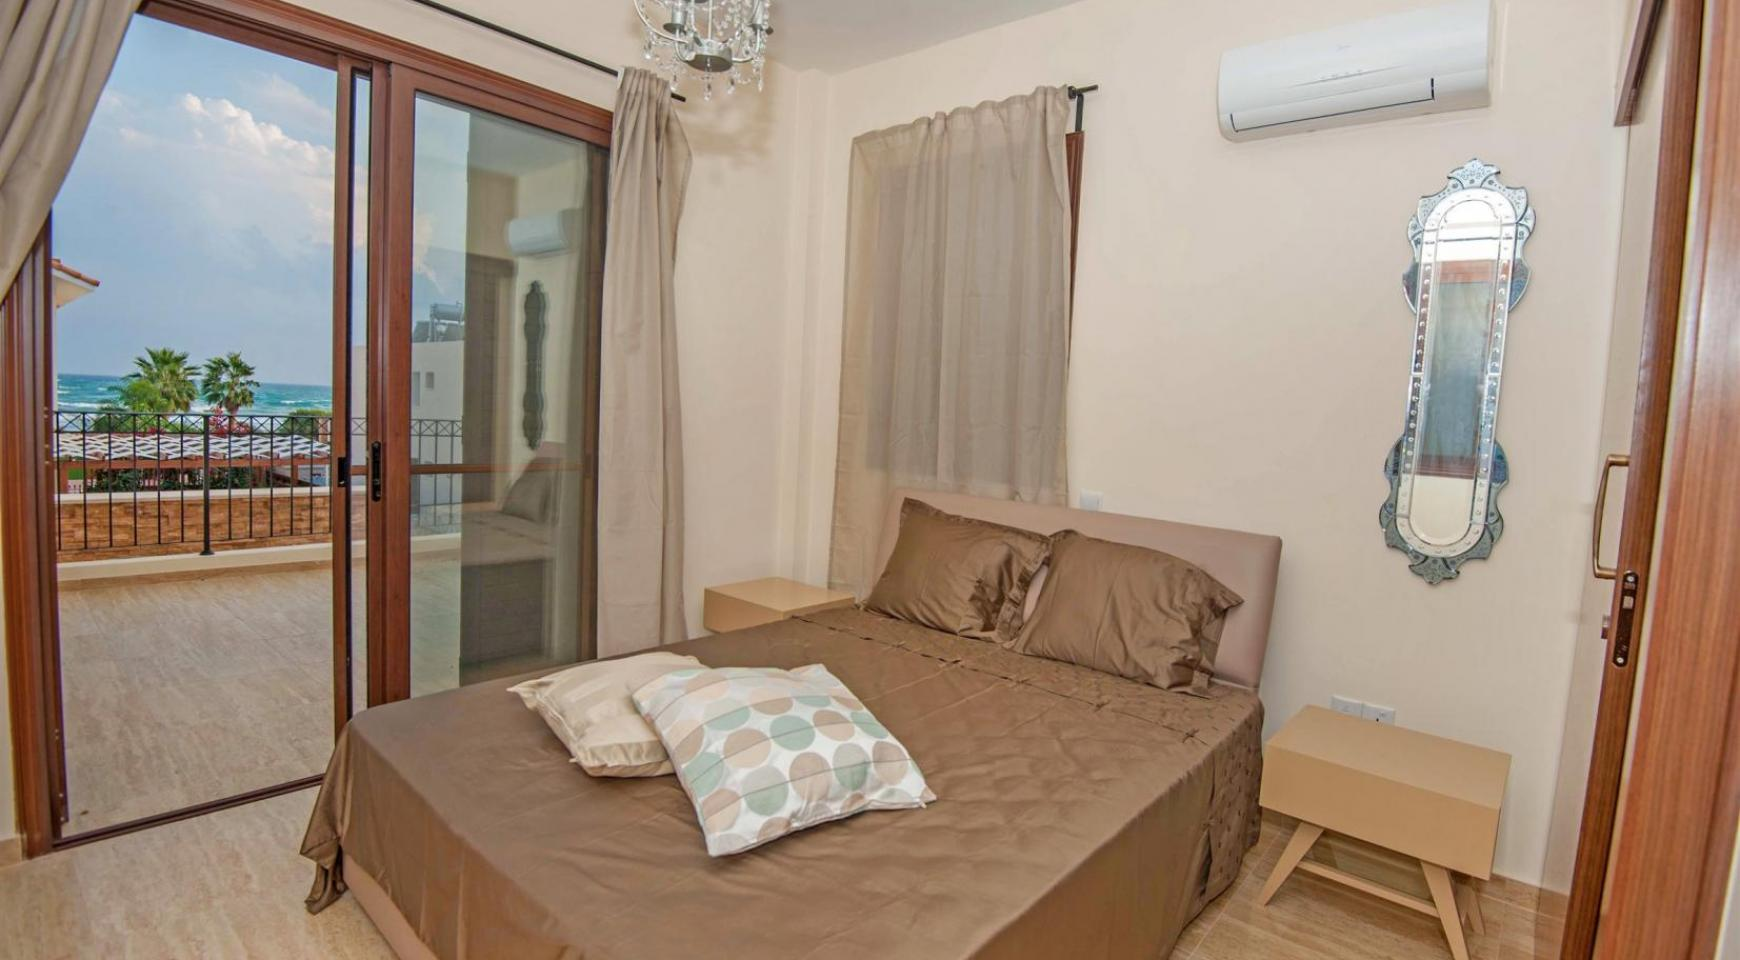 3 Bedroom House on the Seafront of Ayia Thekla - 8